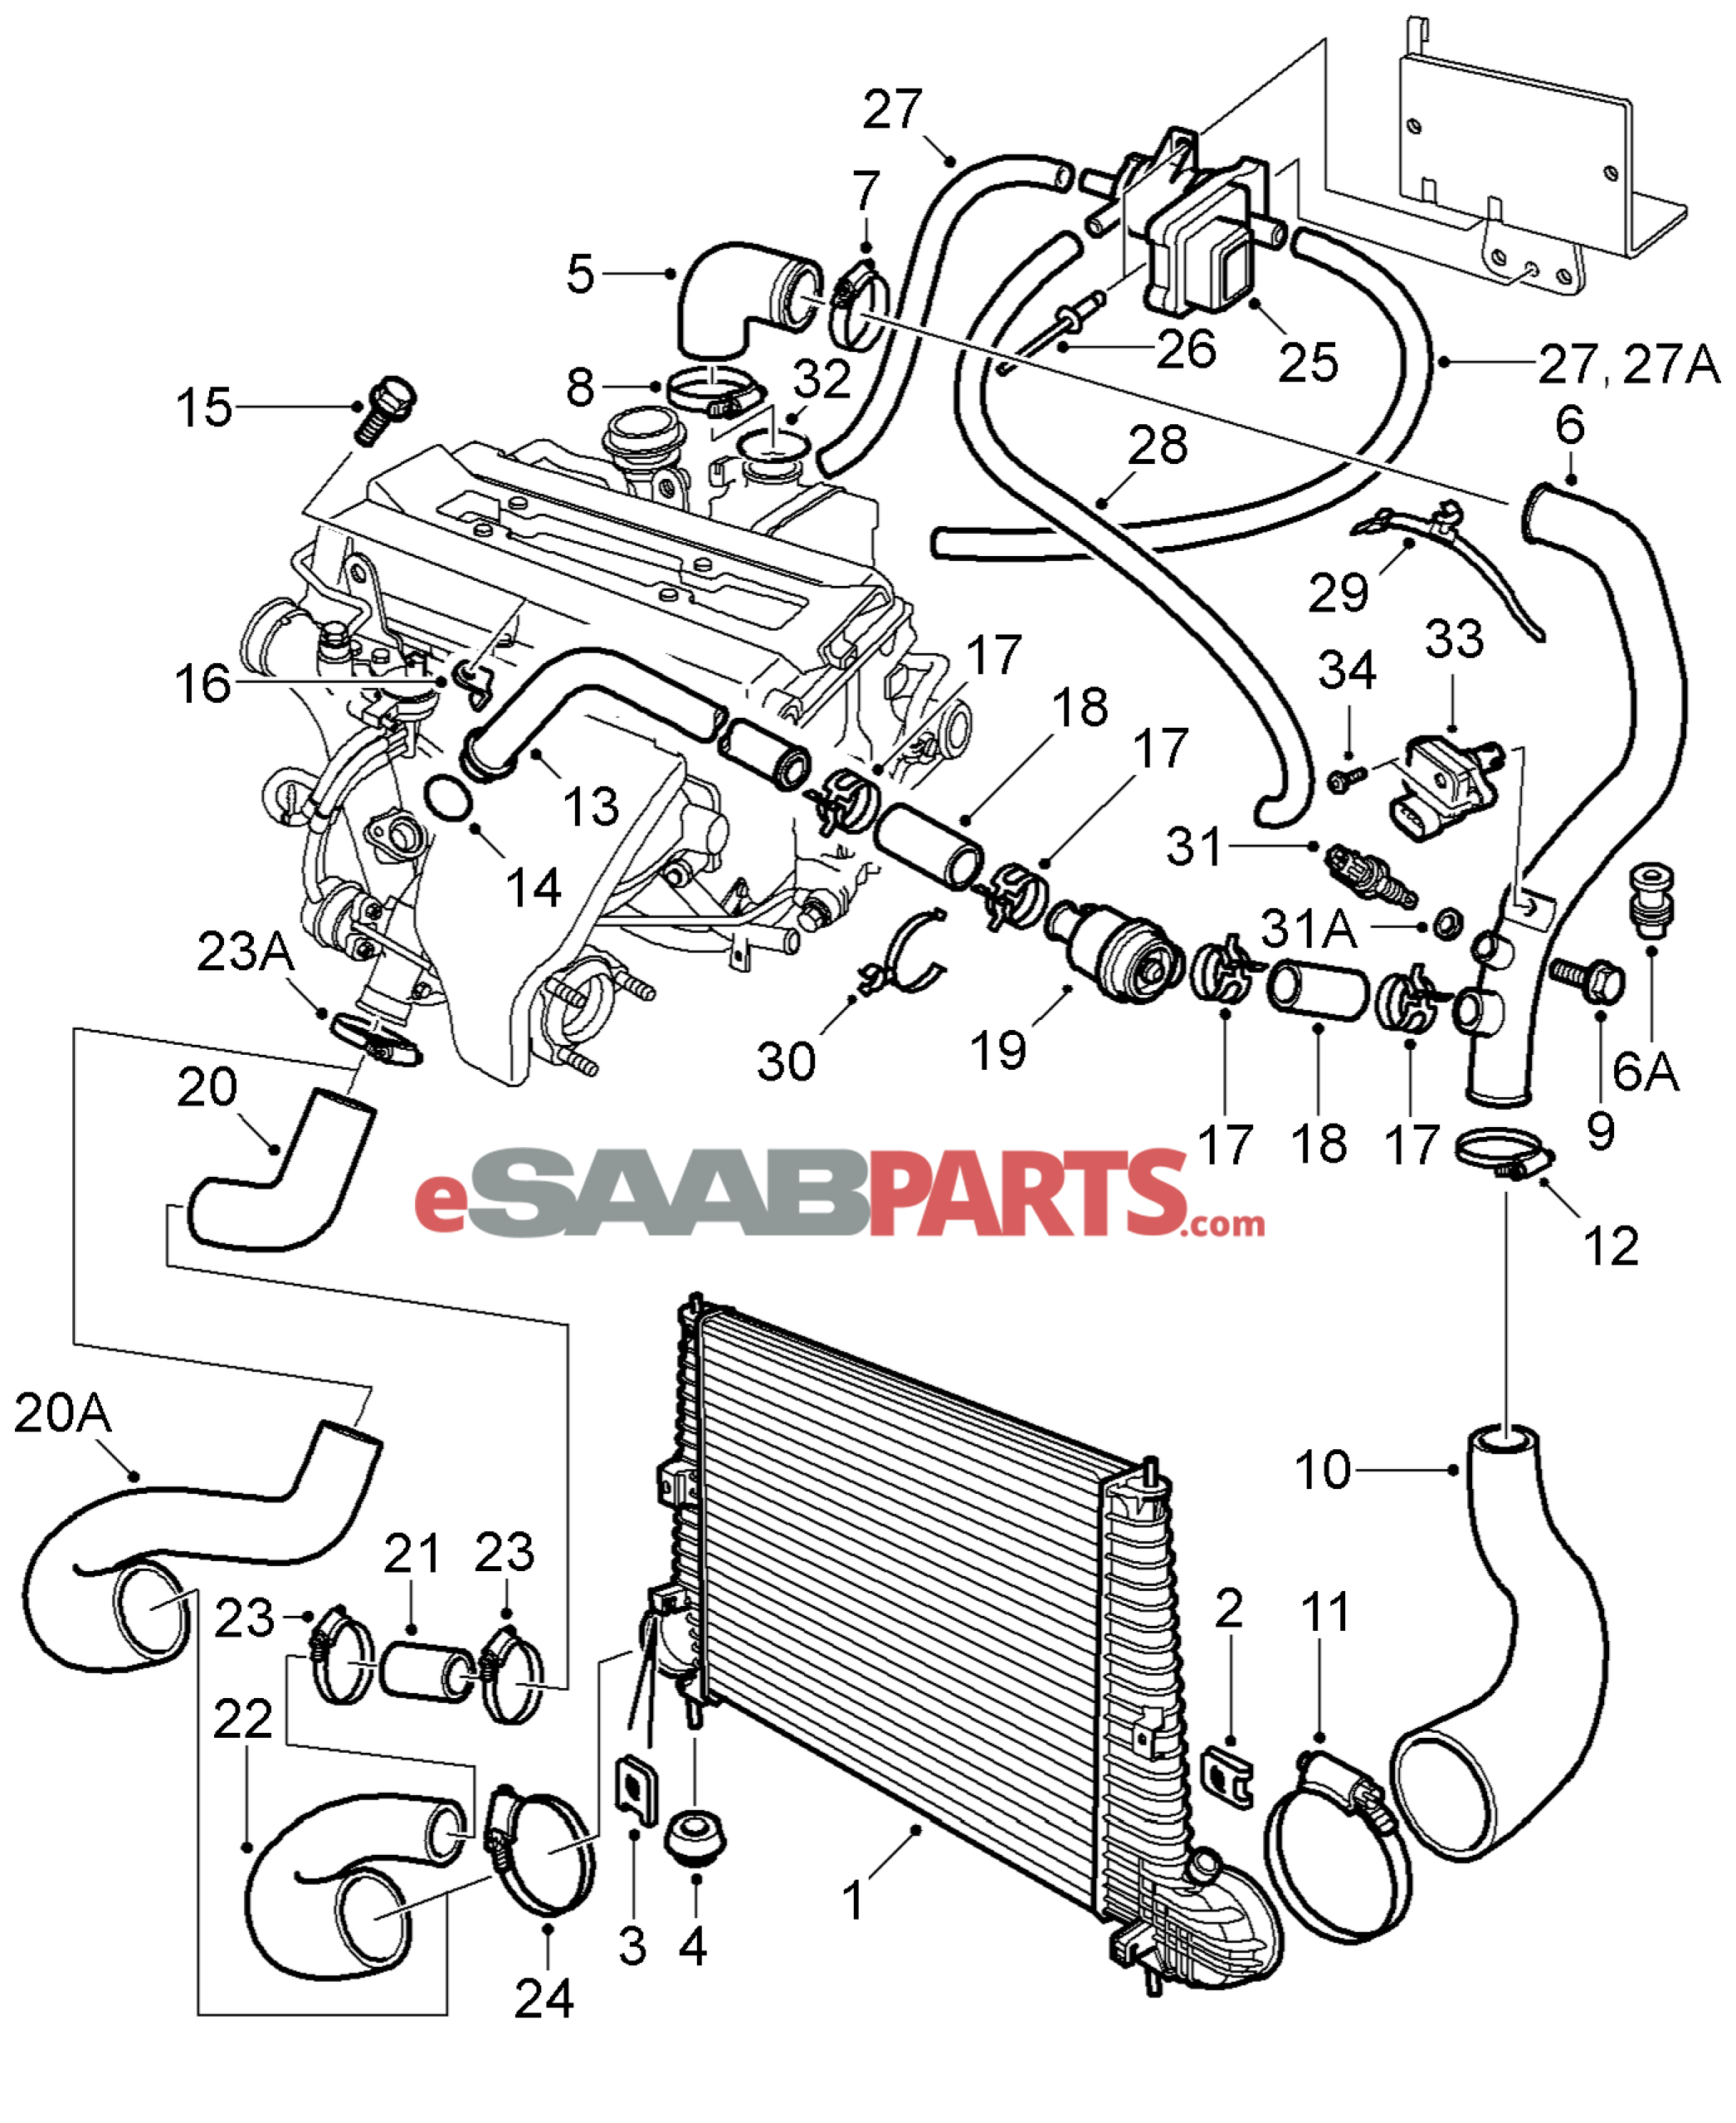 wiring diagram land rover discovery 1 with Saab 95 Engine Diagram on Rover Engine Schematics besides Pictures9 moreover Range Rover Relay Wiring Diagram as well Yamaha G 2 Electric Wiring Installation Diagram 1990 likewise 32261 2004 Xl7 Service Engine Soon Light.